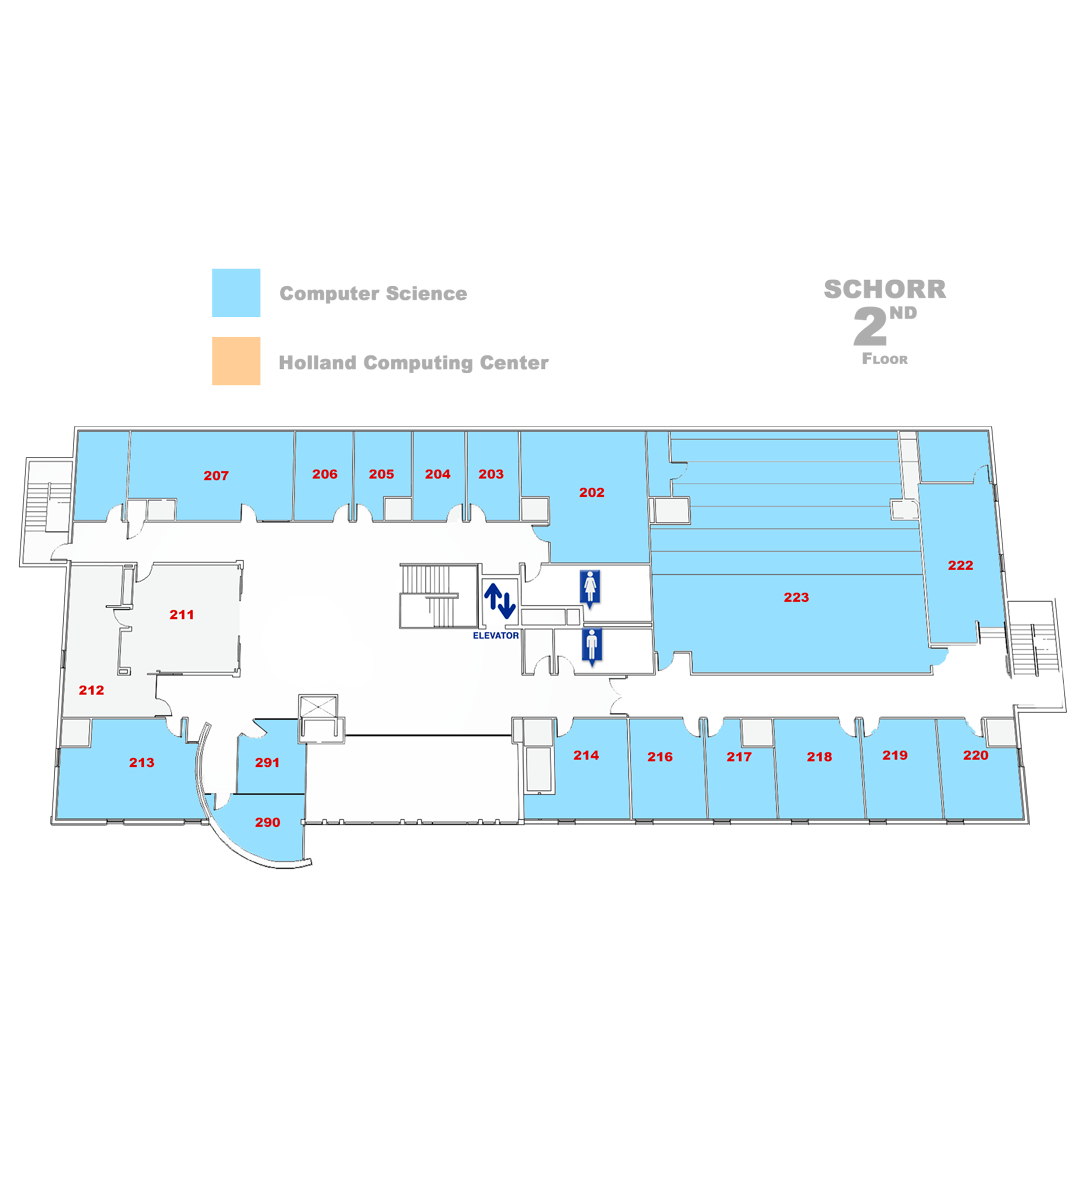 map of Schorr Second floor